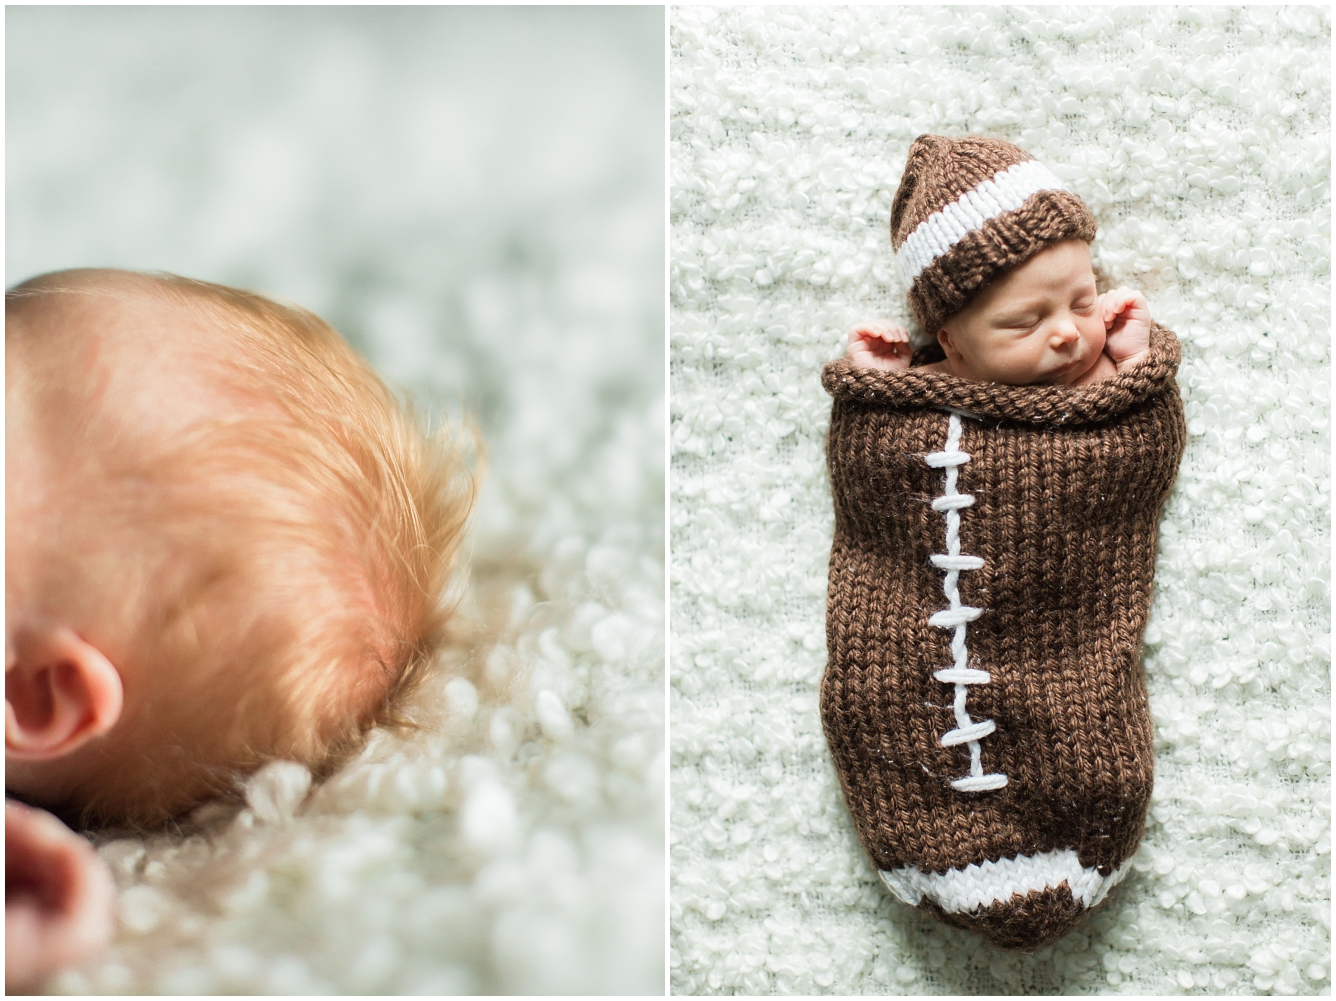 katy-lifestlye-newborn-photographer-08